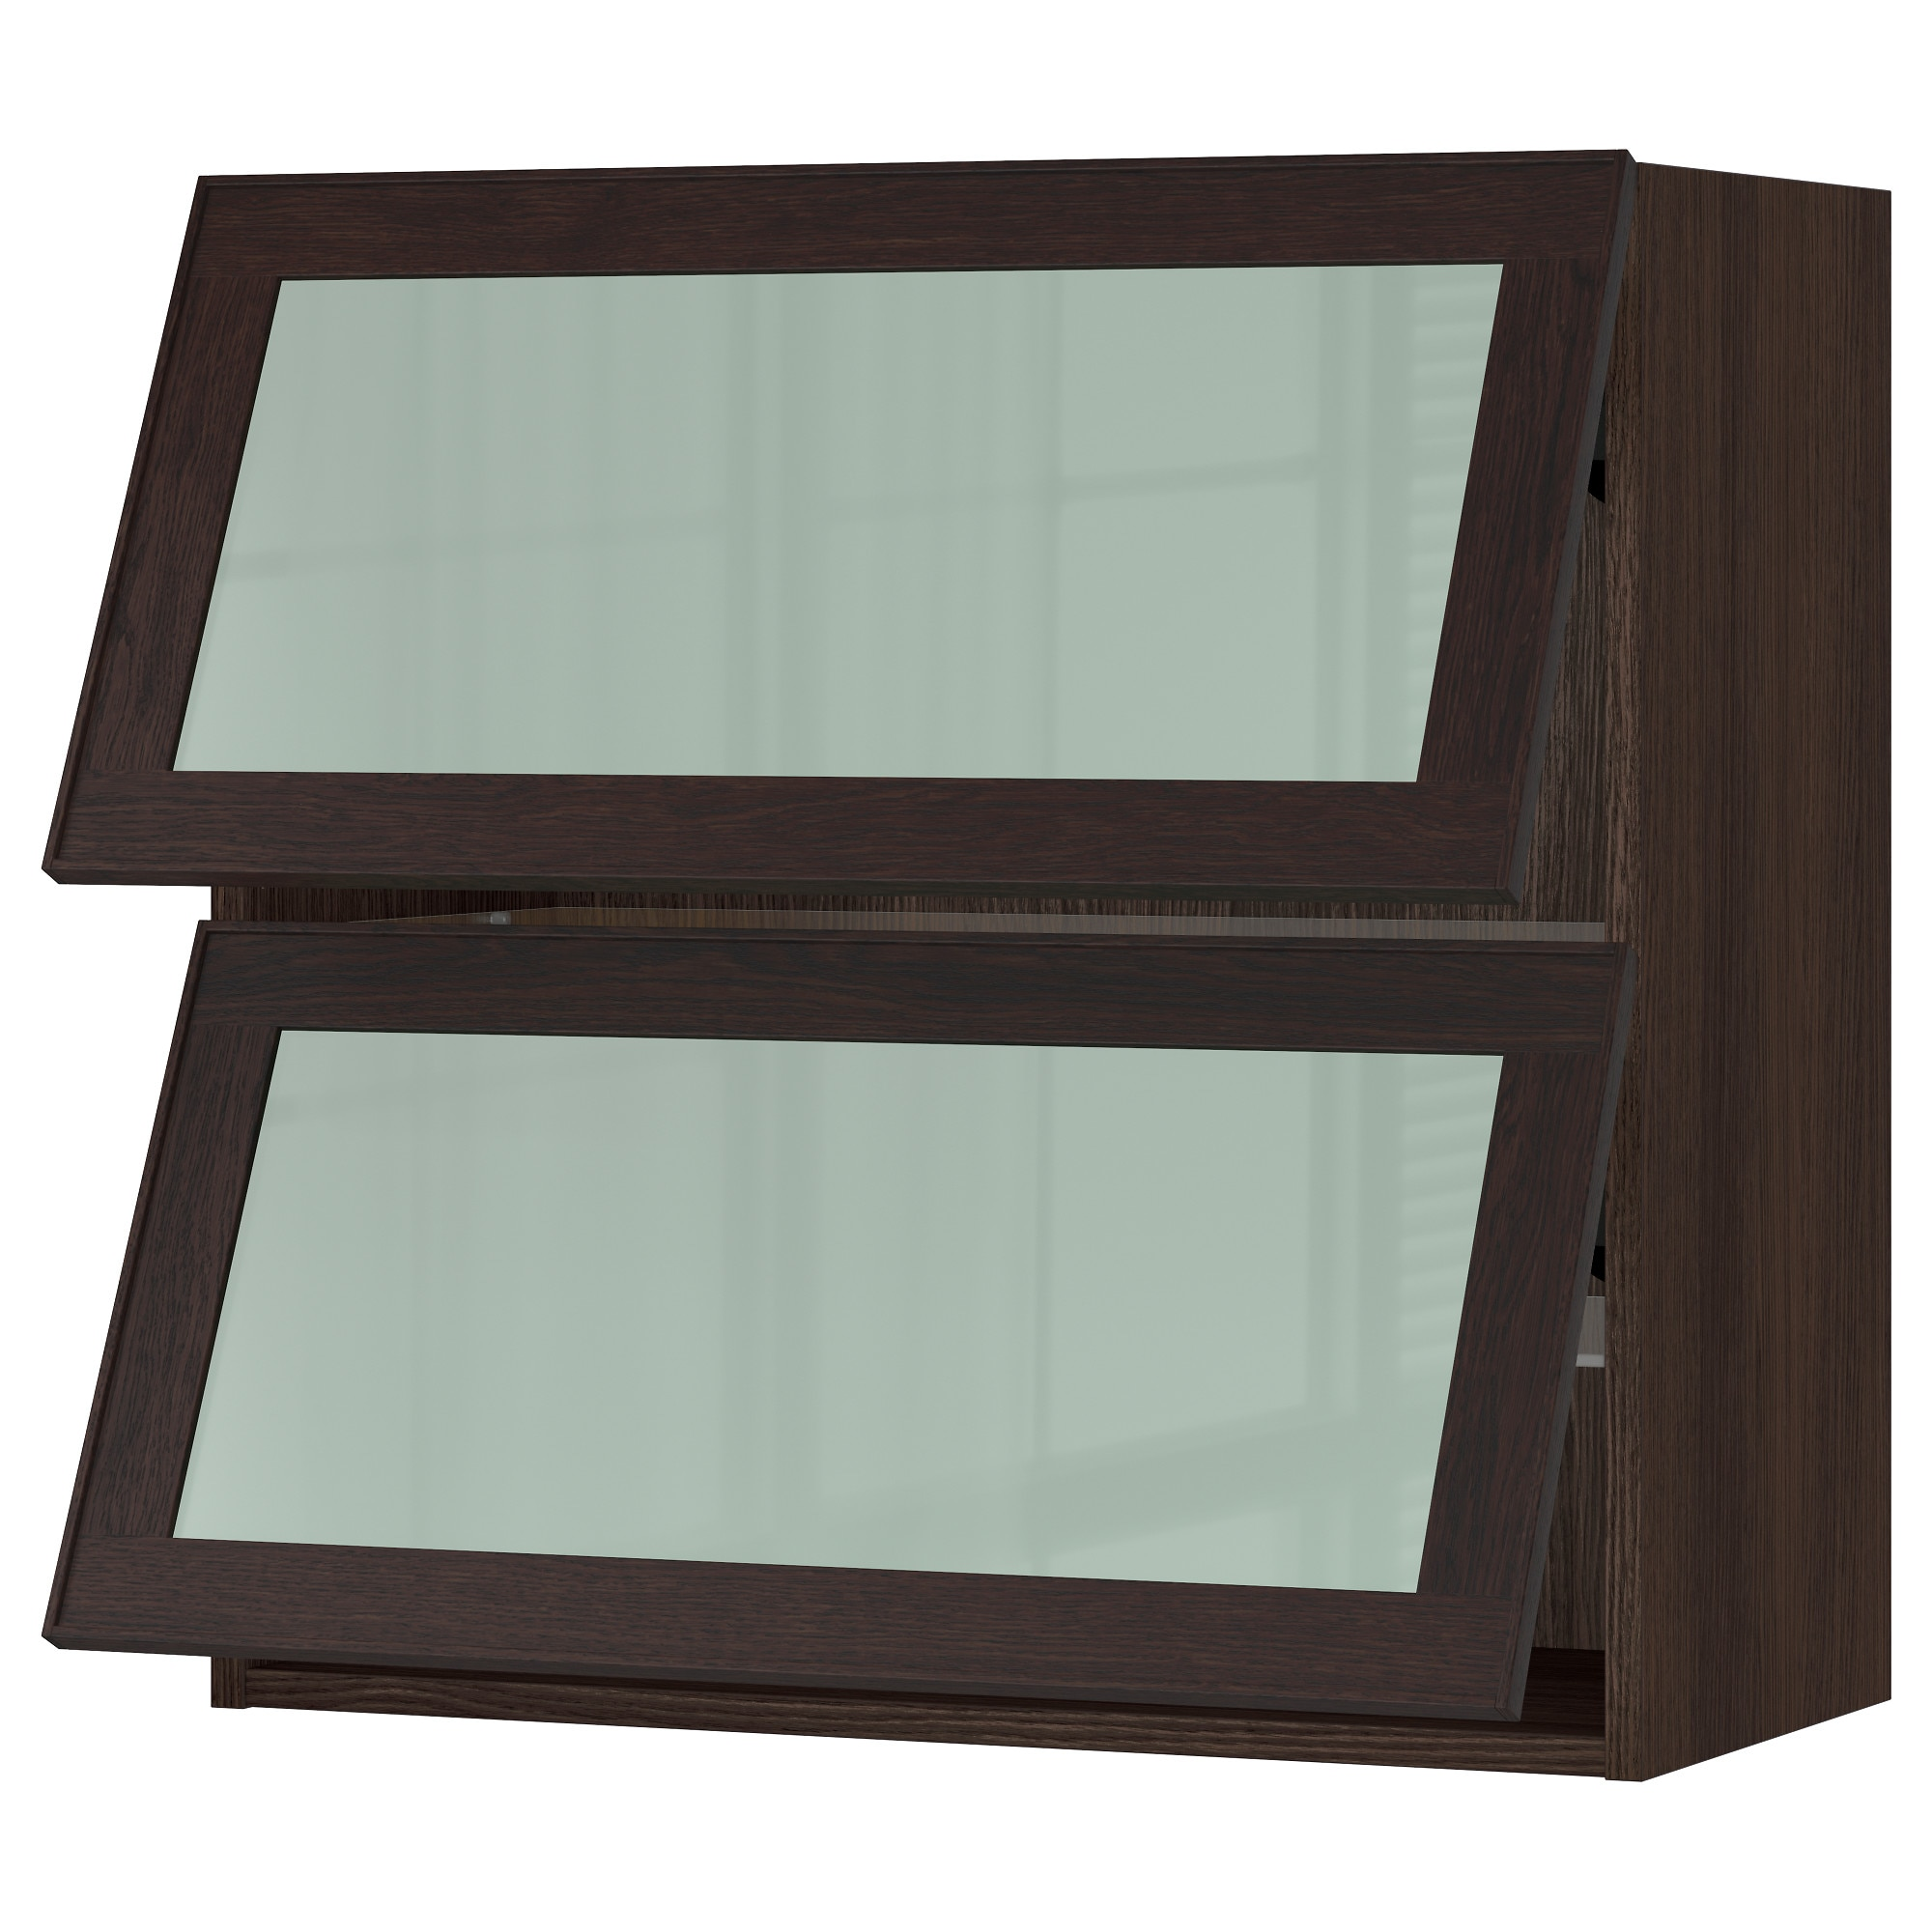 Charmant SEKTION Horizontal Wall Cabinet/2glass Door   Wood Effect Brown, Ekestad  Brown   IKEA